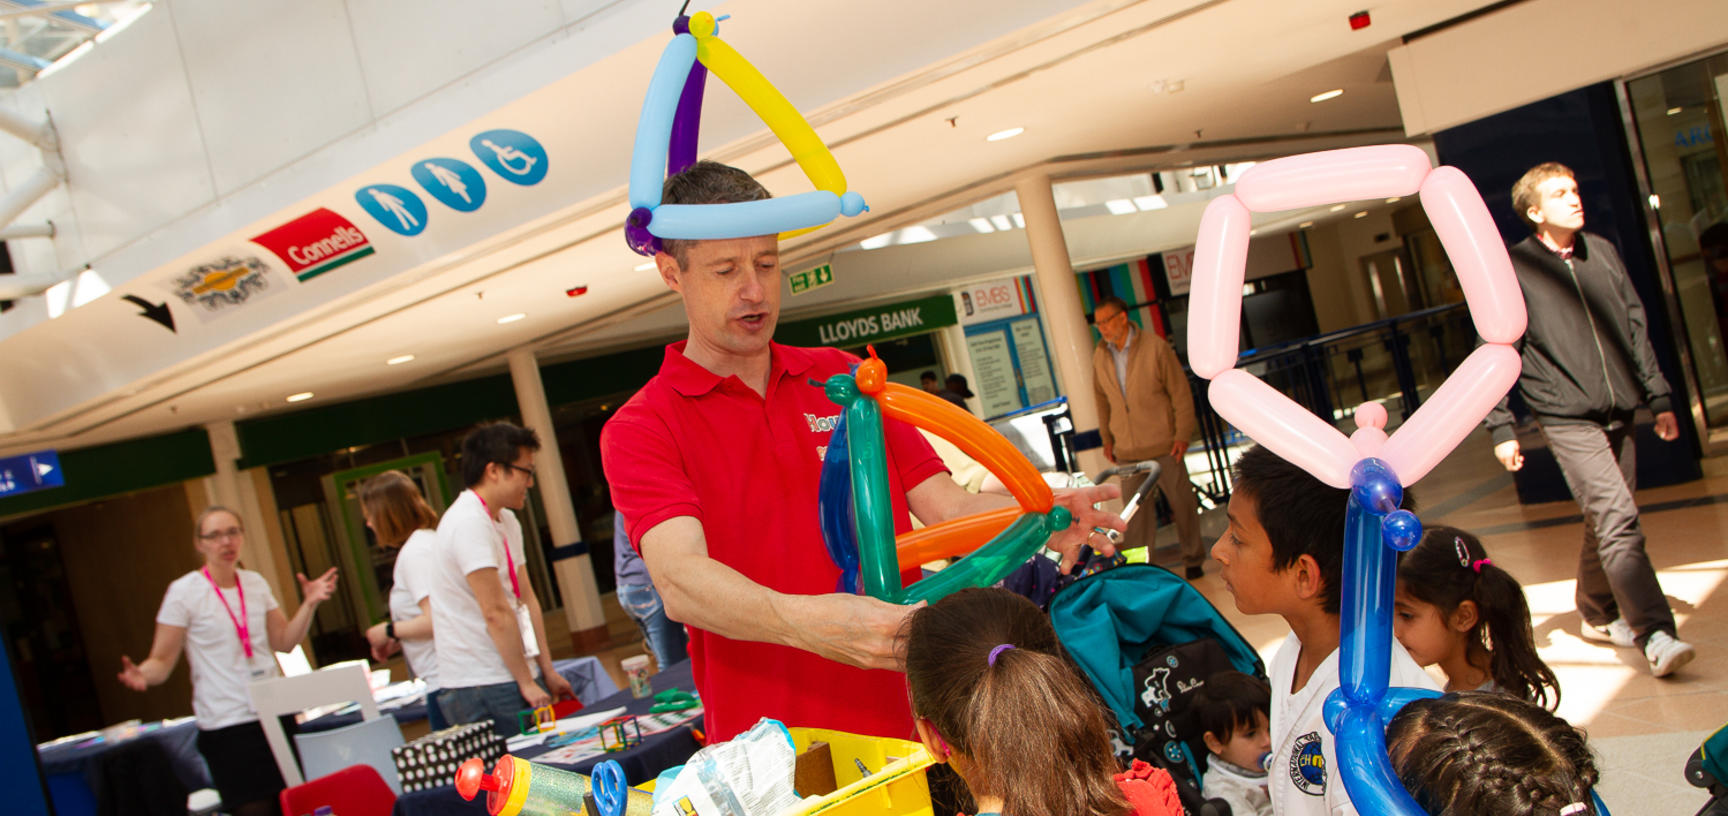 House of Maths provides mathematical balloon hats for children at the Oxford Maths Festival